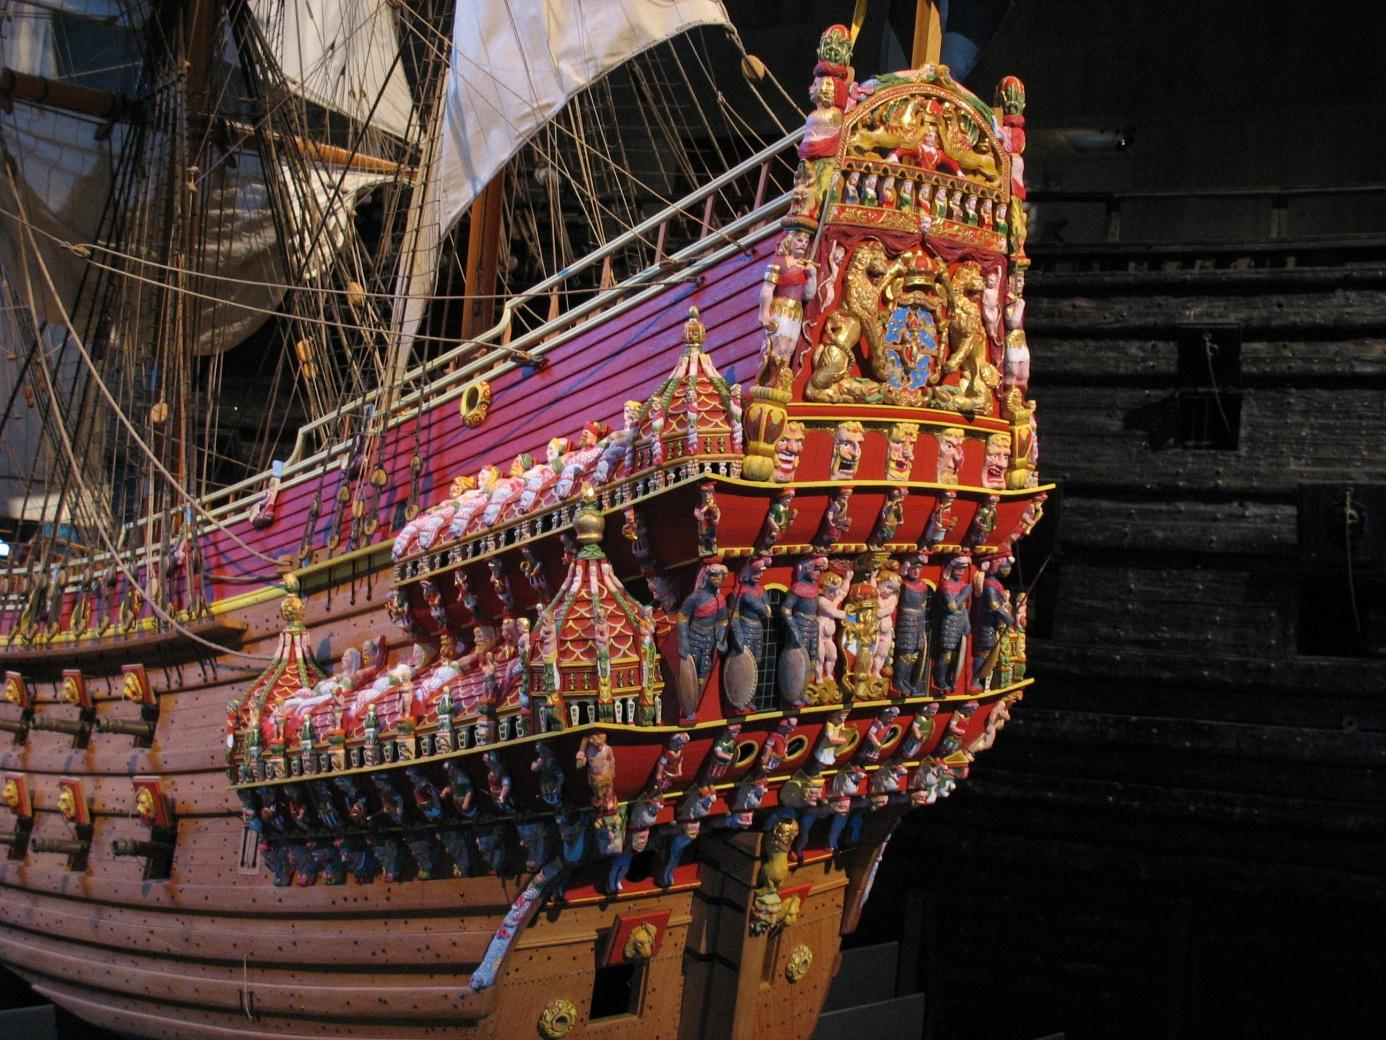 https://upload.wikimedia.org/wikipedia/commons/5/5e/Vasa_stern_color_model.jpg